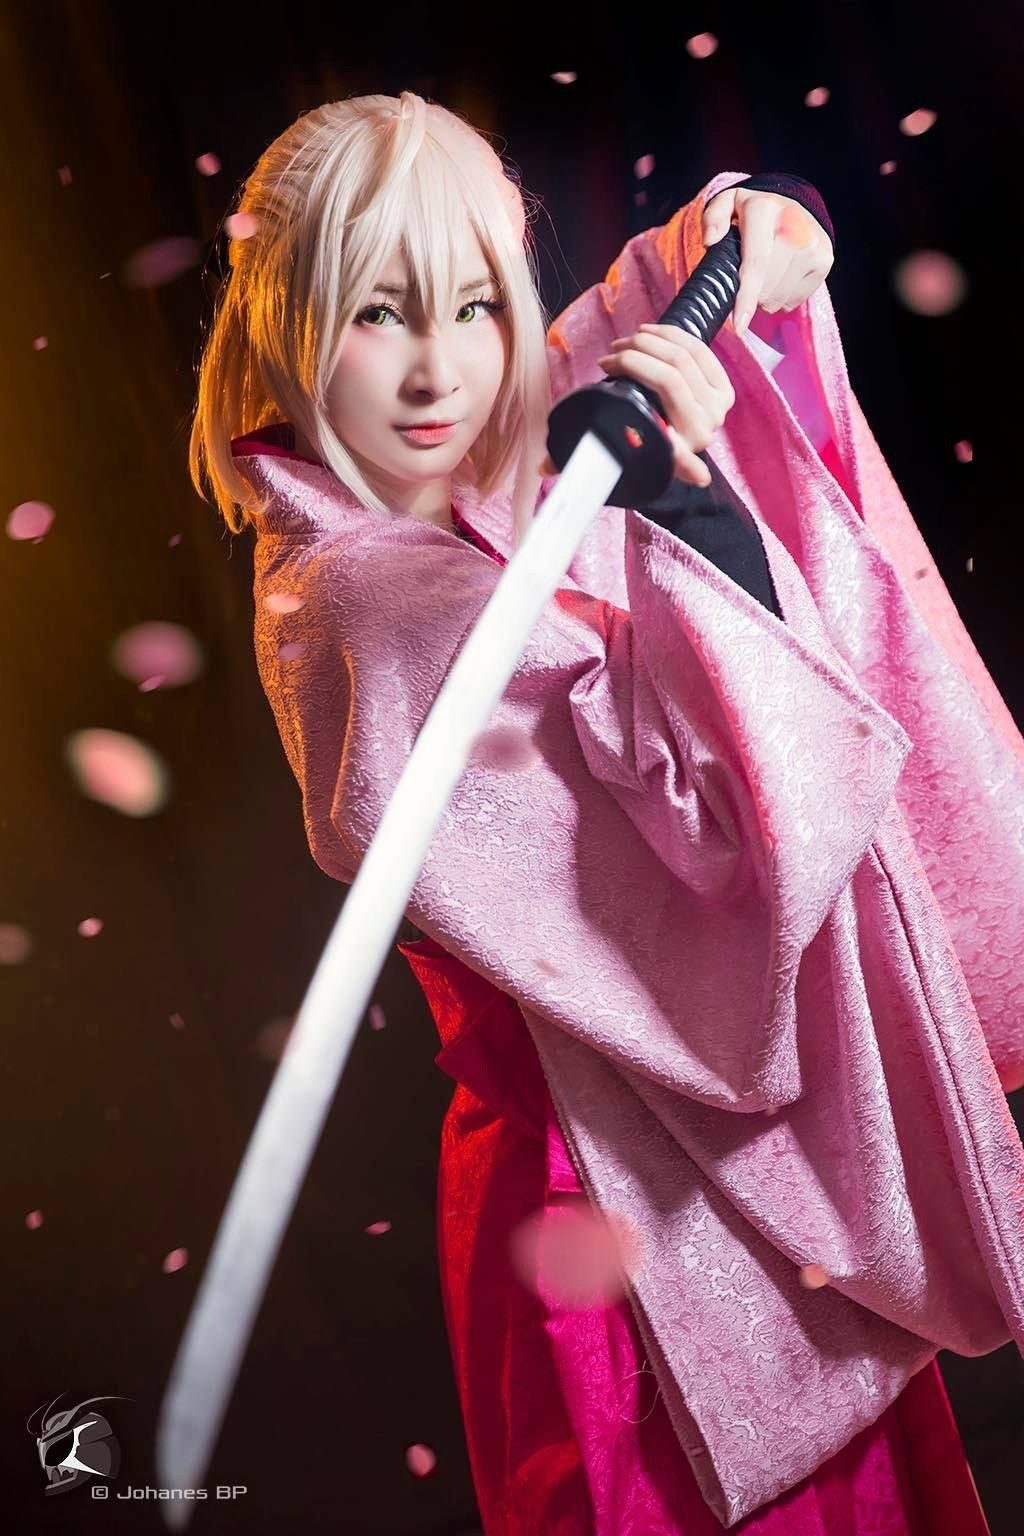 Fate Grand Order and Apocrypha Cosplay by Namika Horigome